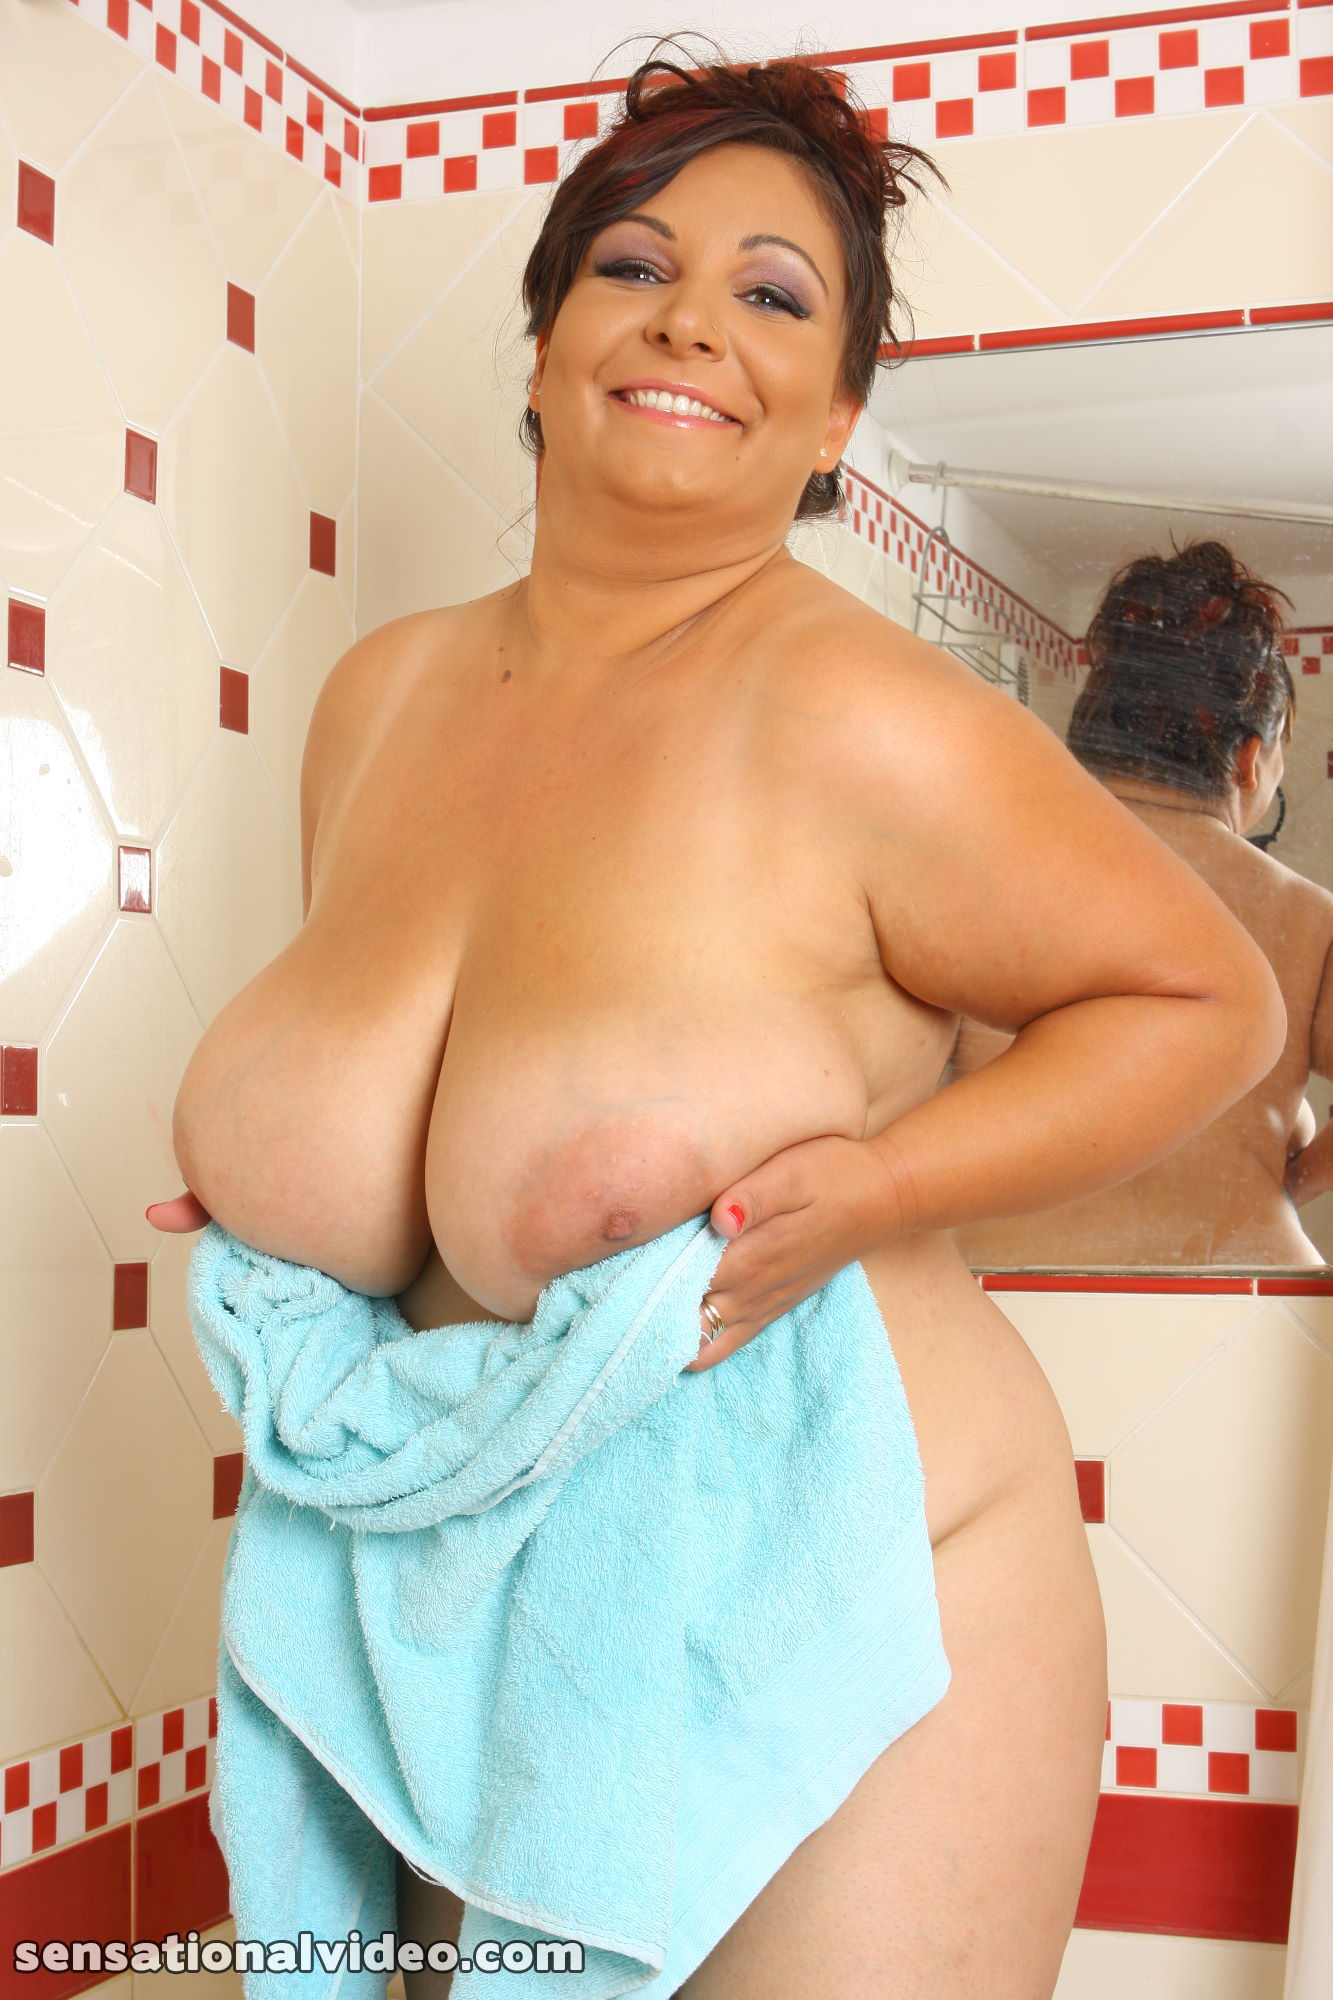 lesgalls spicytitties plumperpass gal667 pic 23